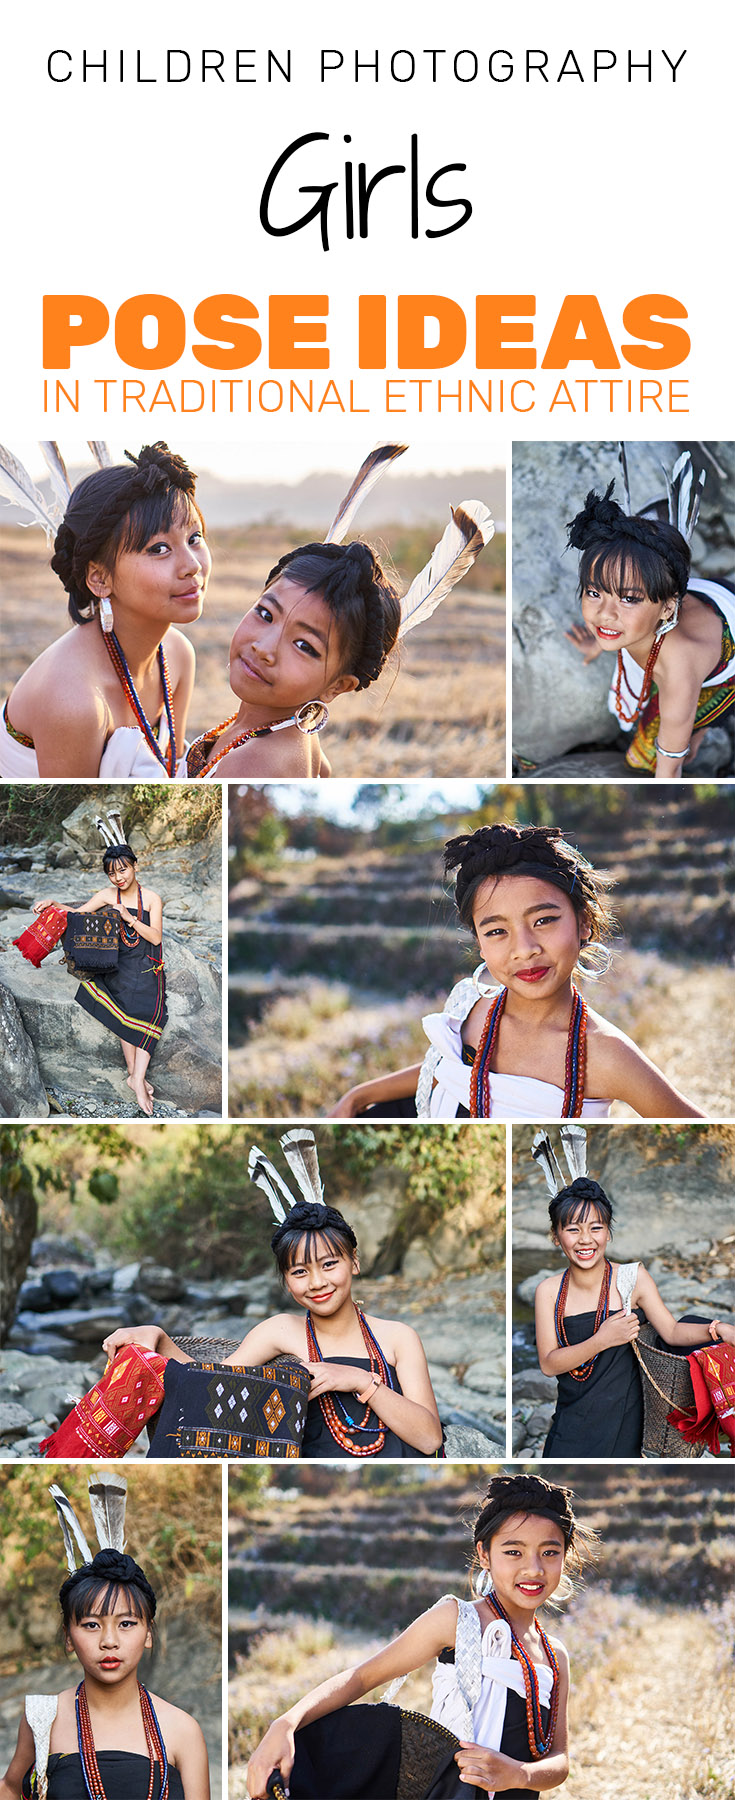 Ideas for Children Photography - Girls Pose ideas in traditional ethnic attire with props.